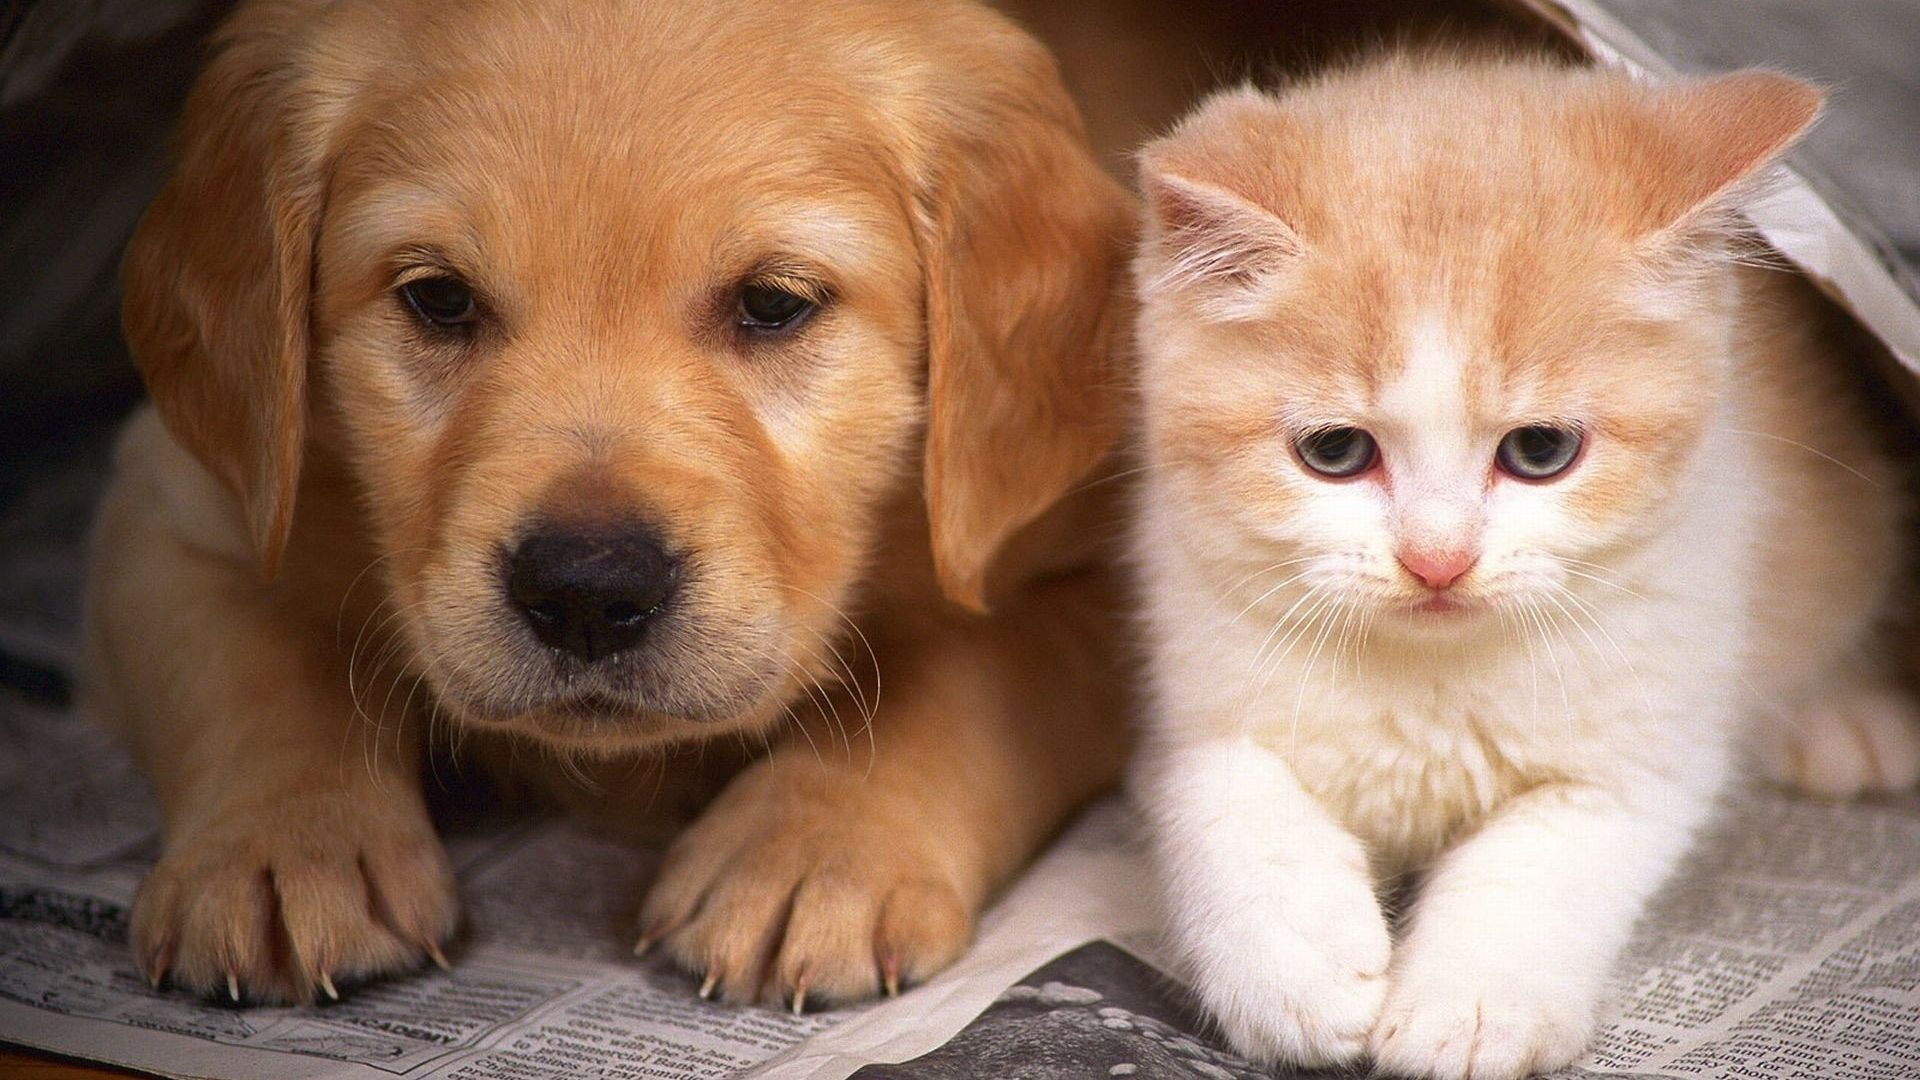 Kitten And Puppy Wallpapers High Definition Is Cool Wallpapers